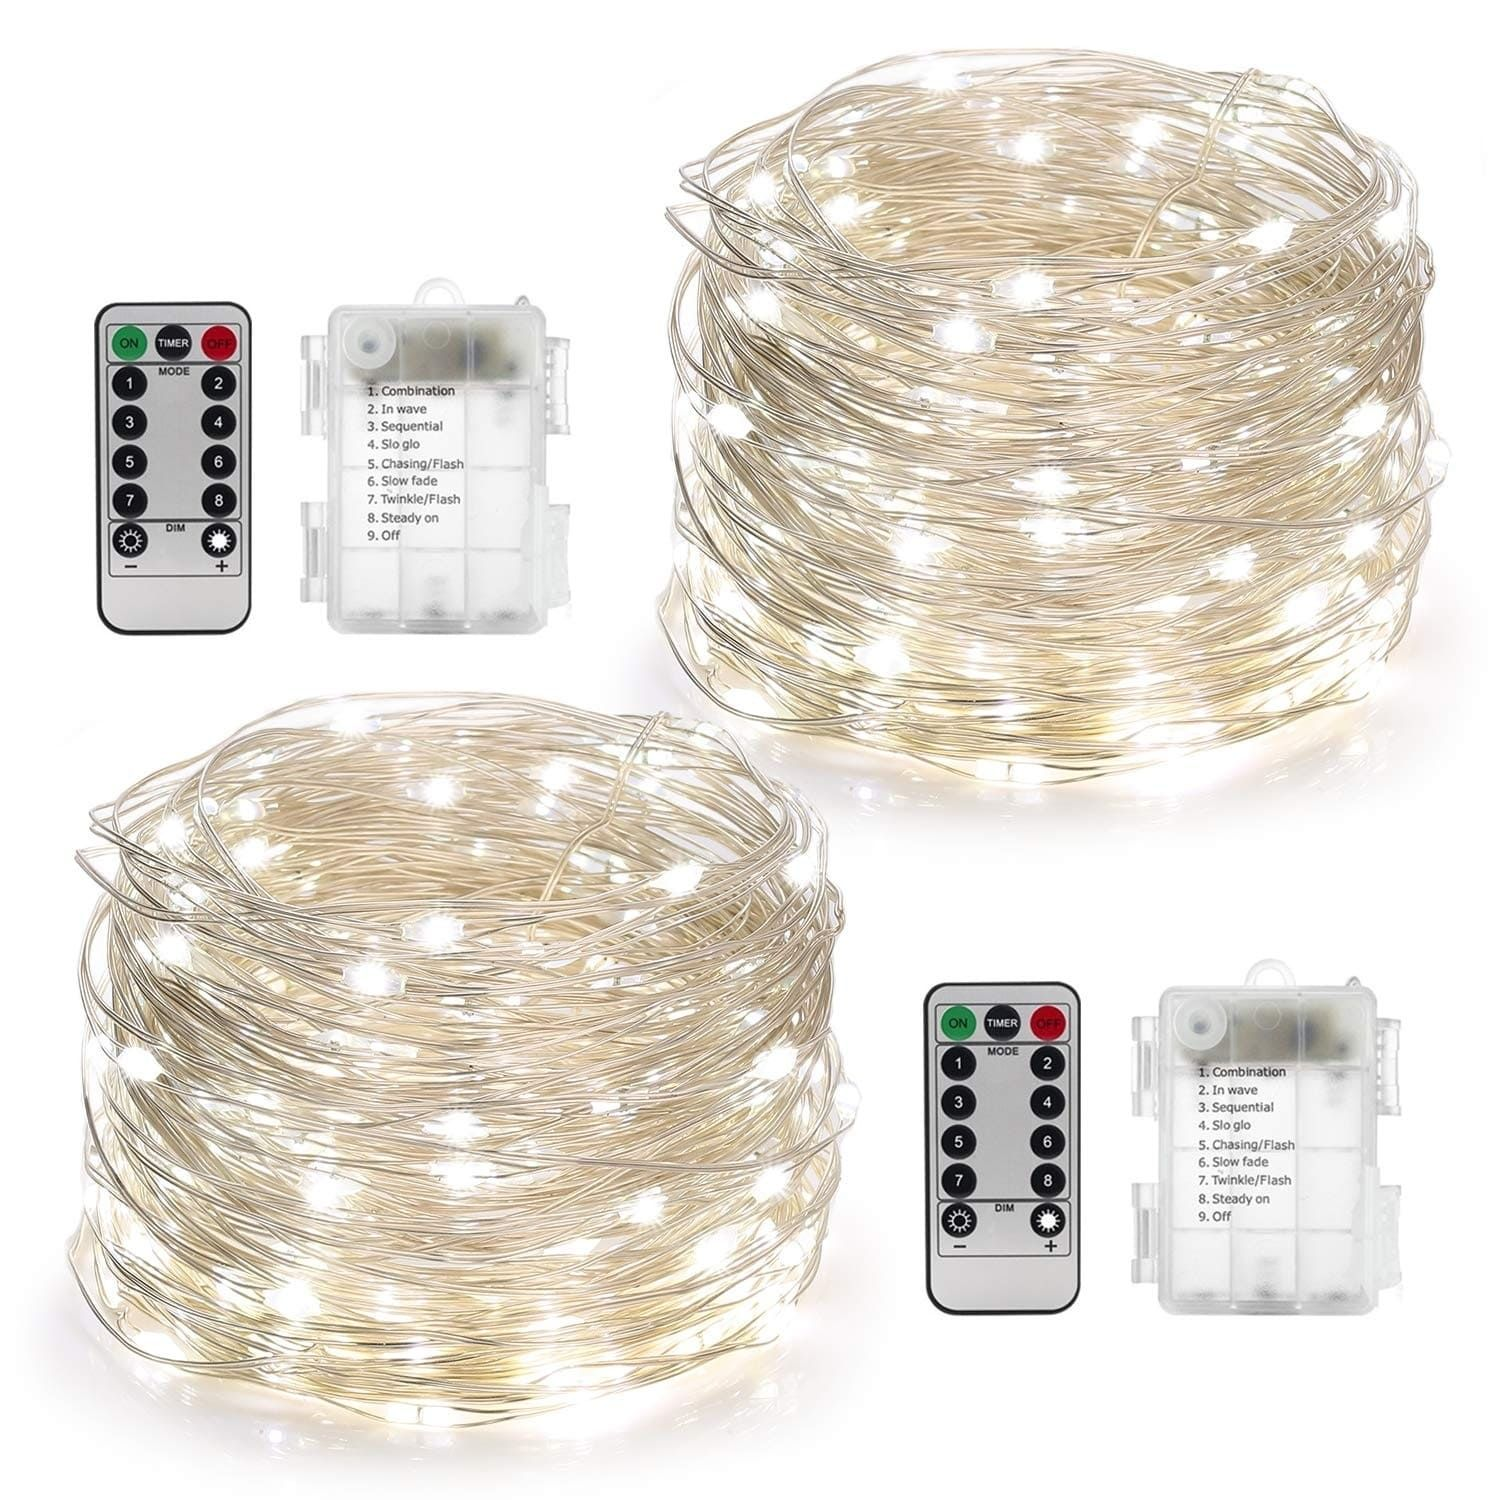 2 Set Fairy Lights Battery Operated 50LED, White Firefly